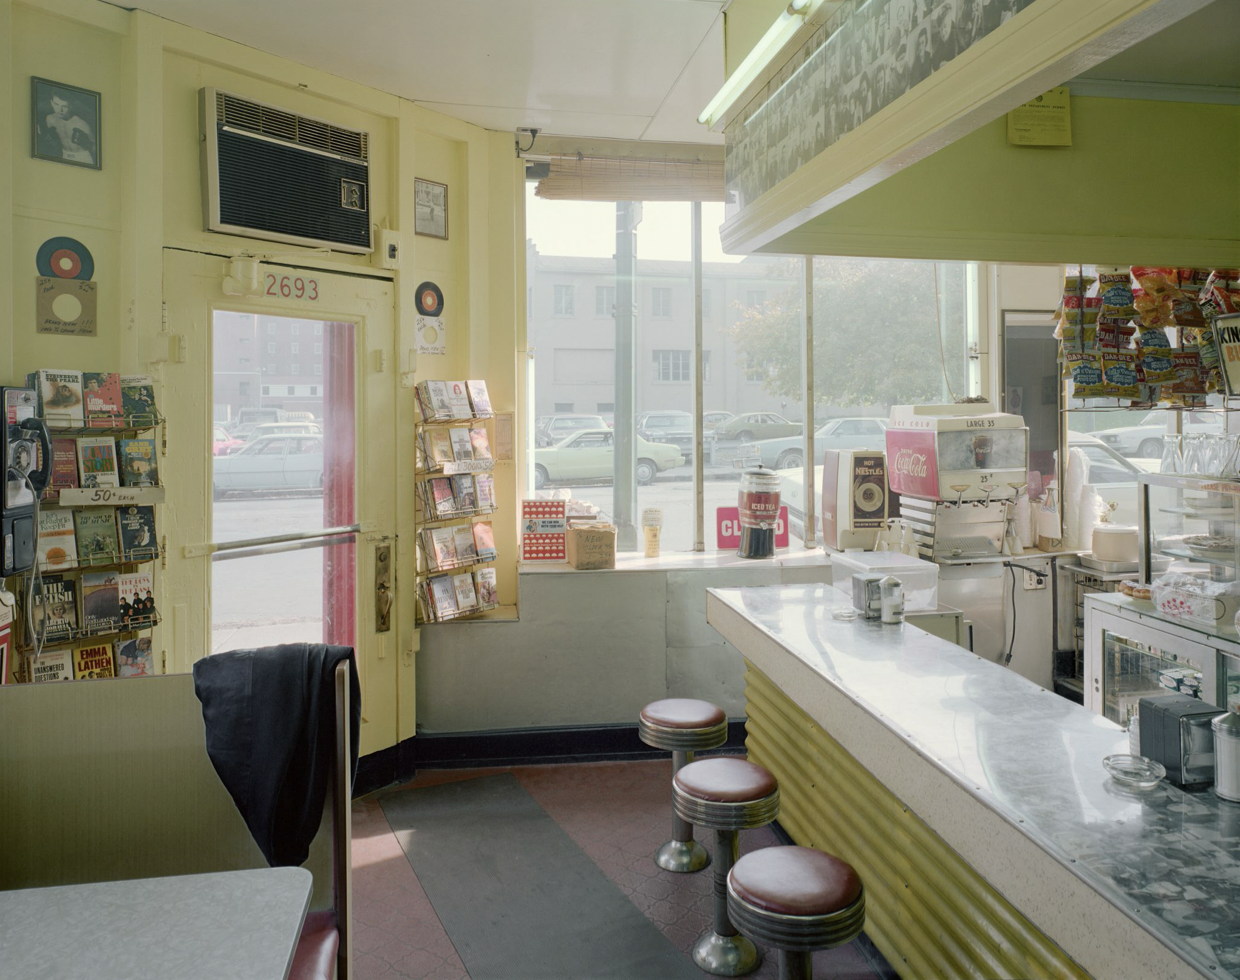 Stephen Shore's Texas Hots, 2693 South Park Avenue, Lackawanna, New York, October 25, 1977, 1977 (printed 2015). A chromogenic color print; unframed: 24 x 20 in. (61 x 50.1 cm). Donating to: The Photography Program at Bard Materials Fund.